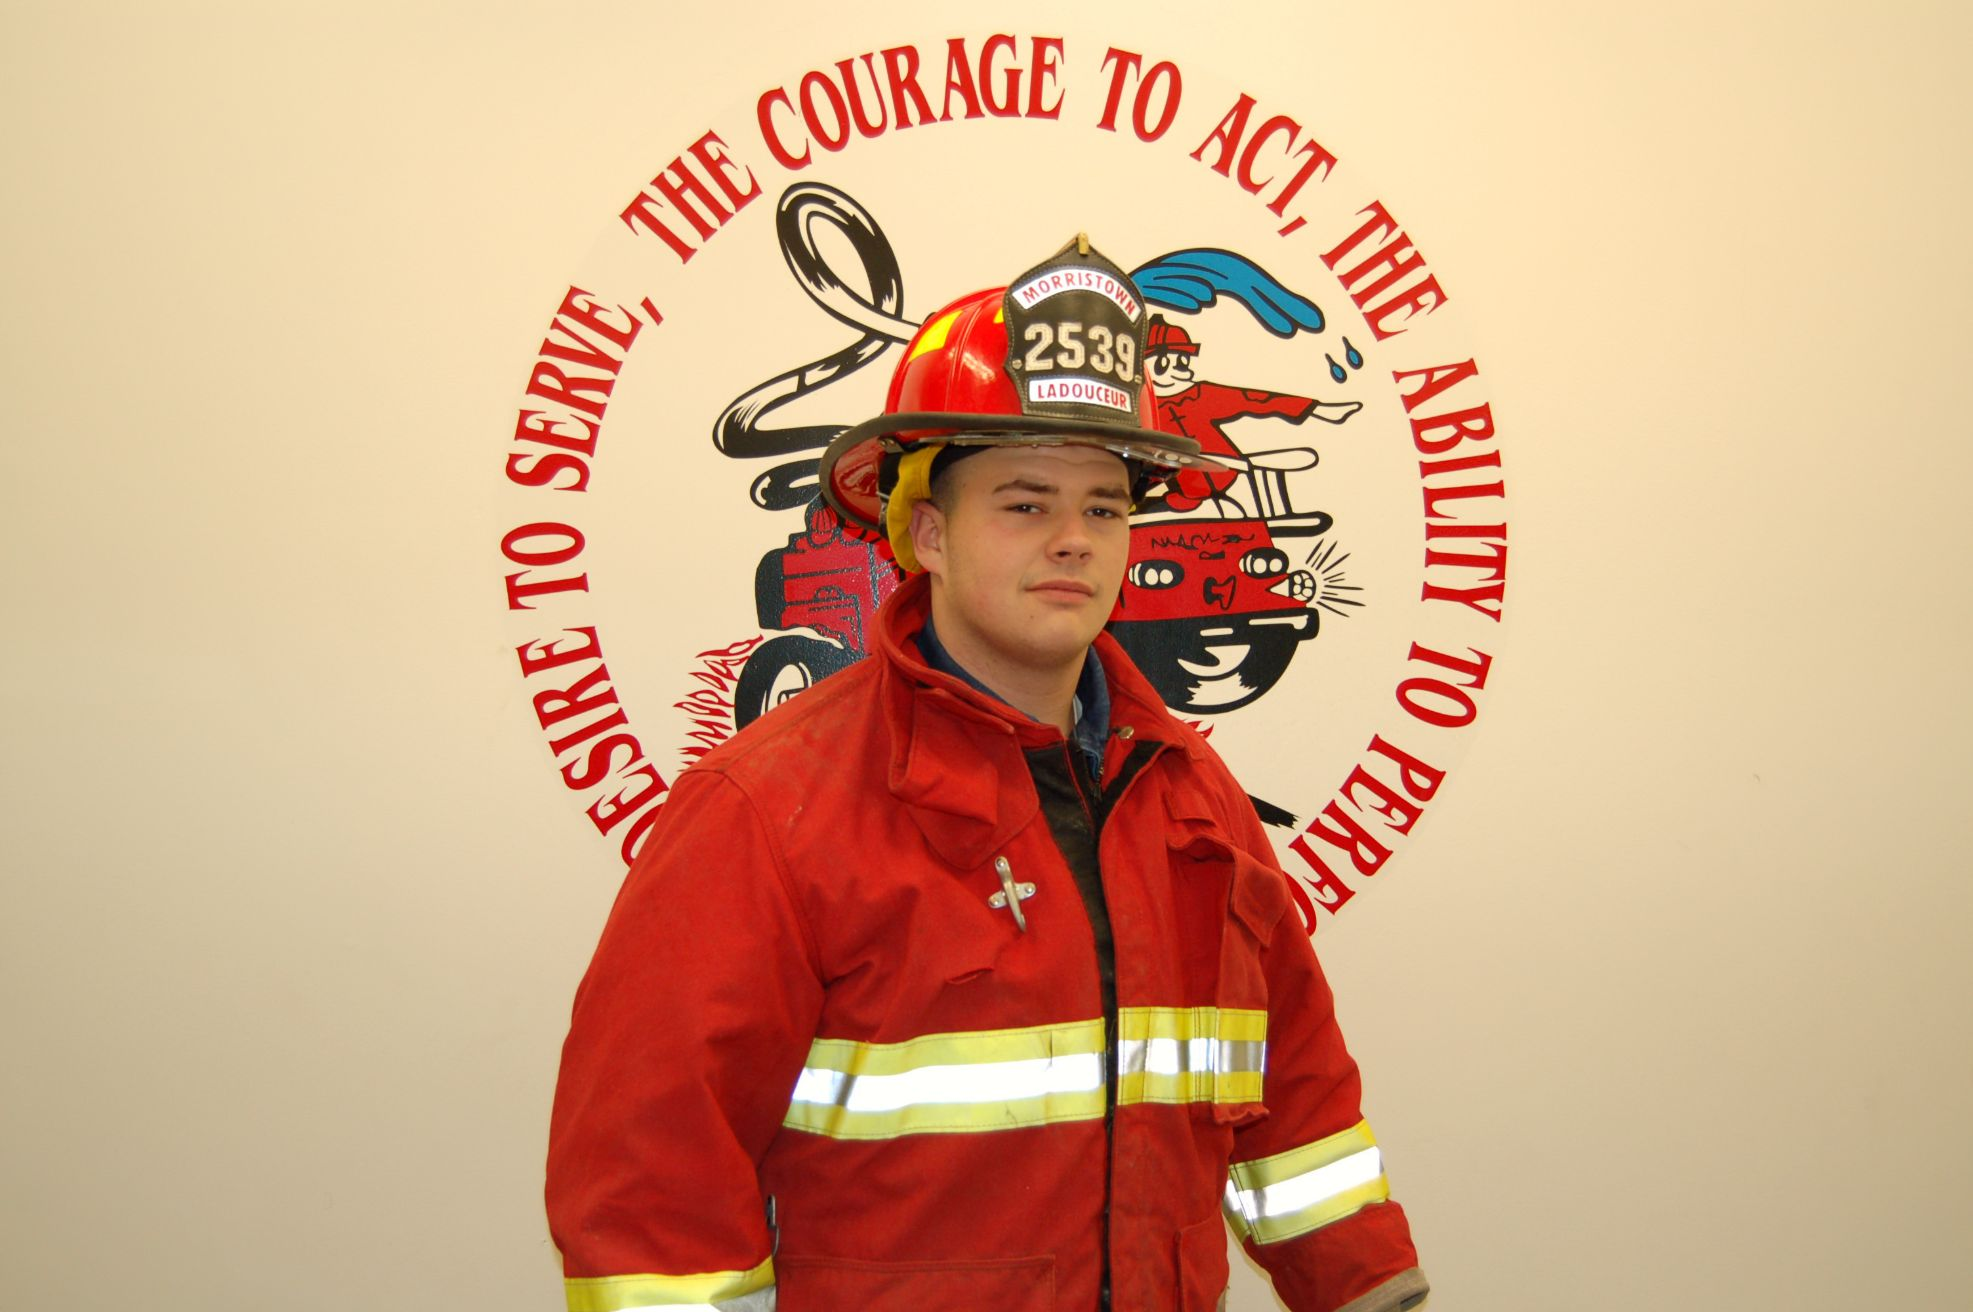 Fire Fighter Dan Ladouceur